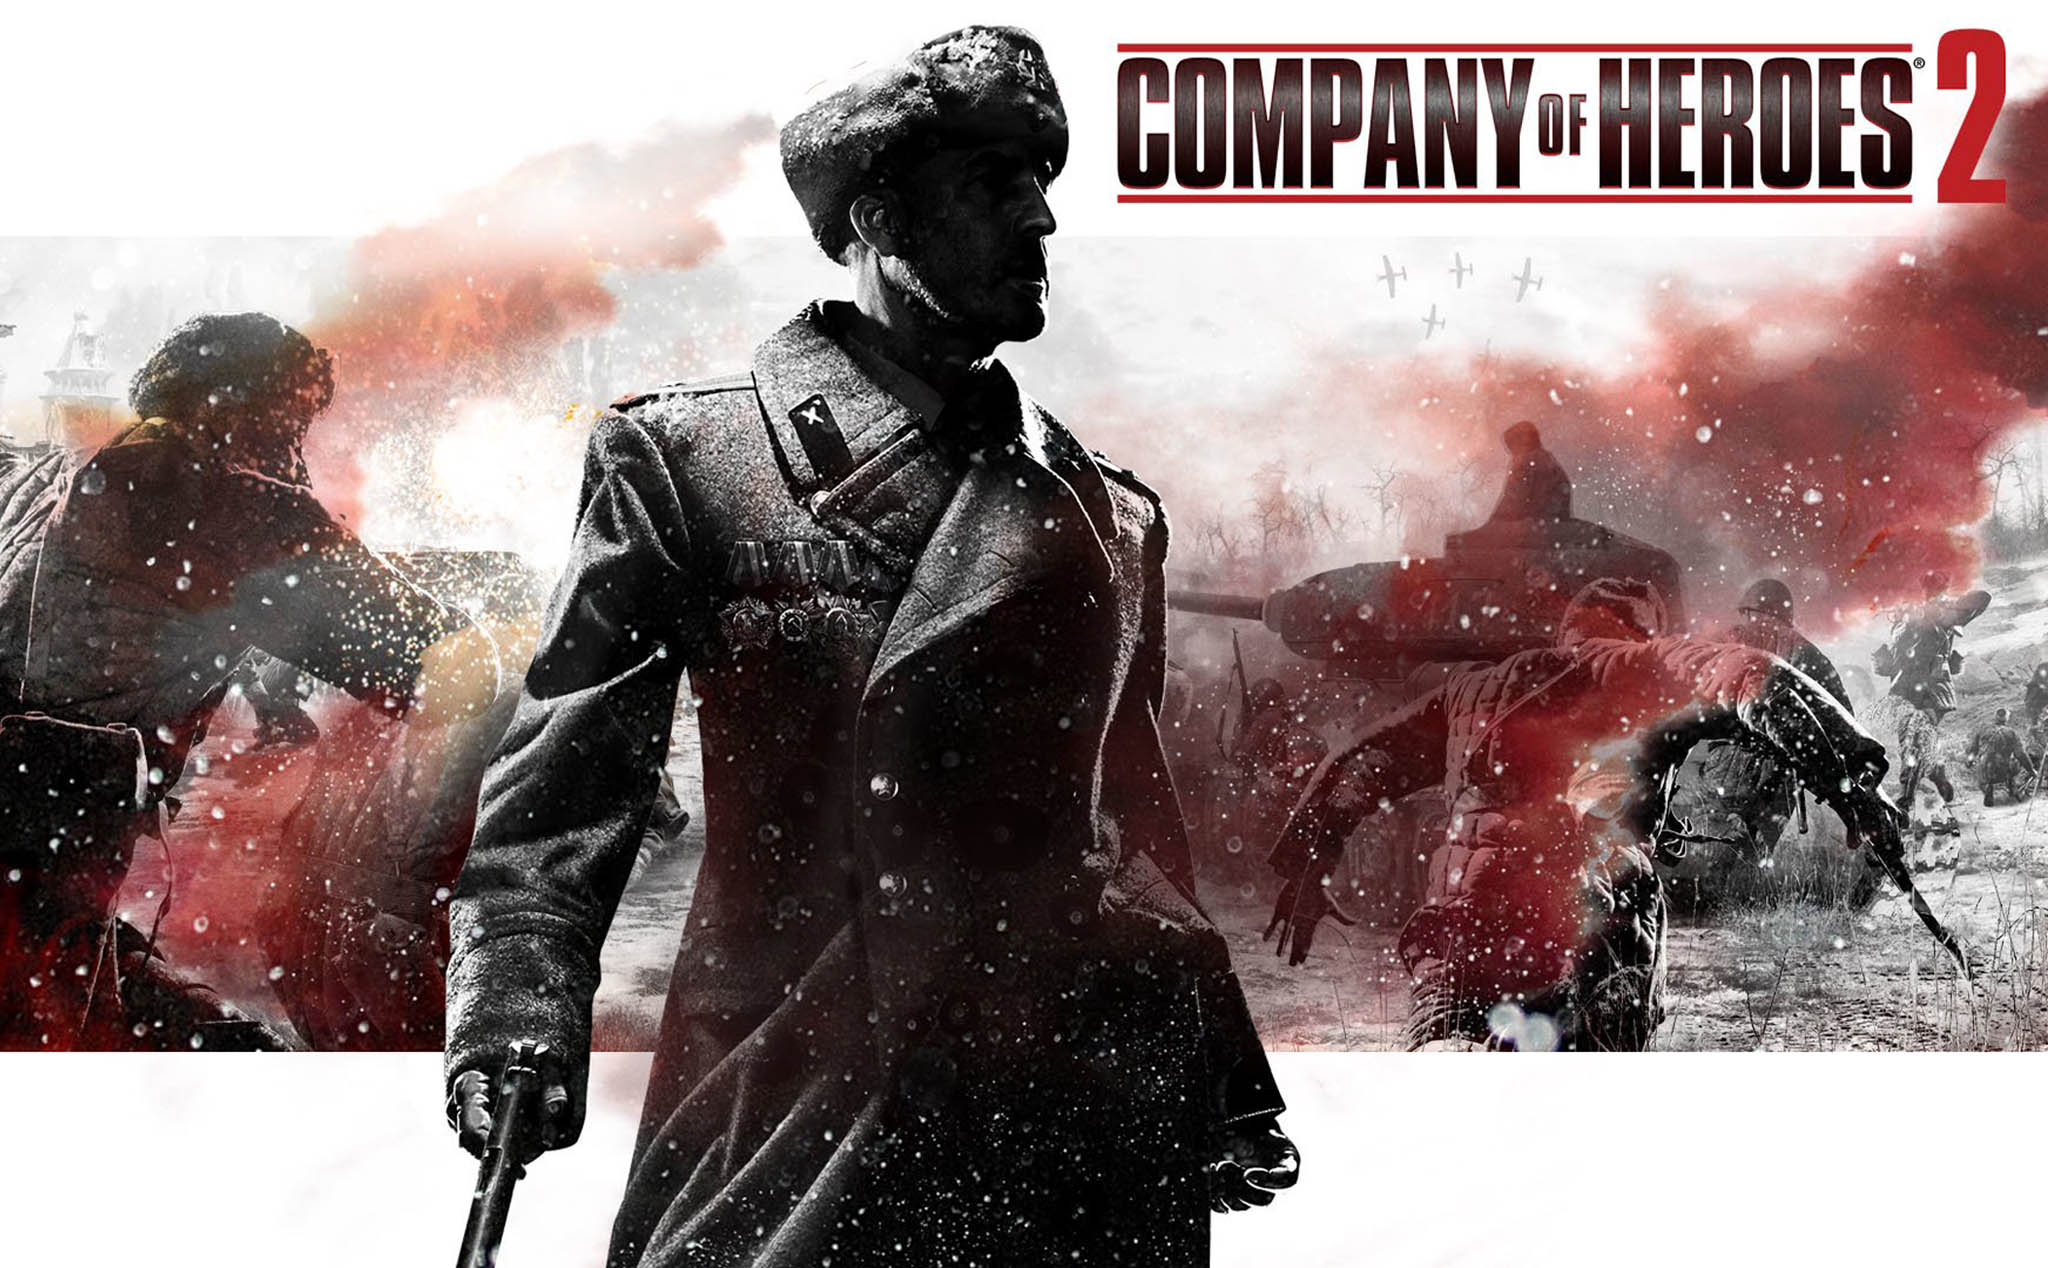 Company of Heroes 2 is free on Steam, please download